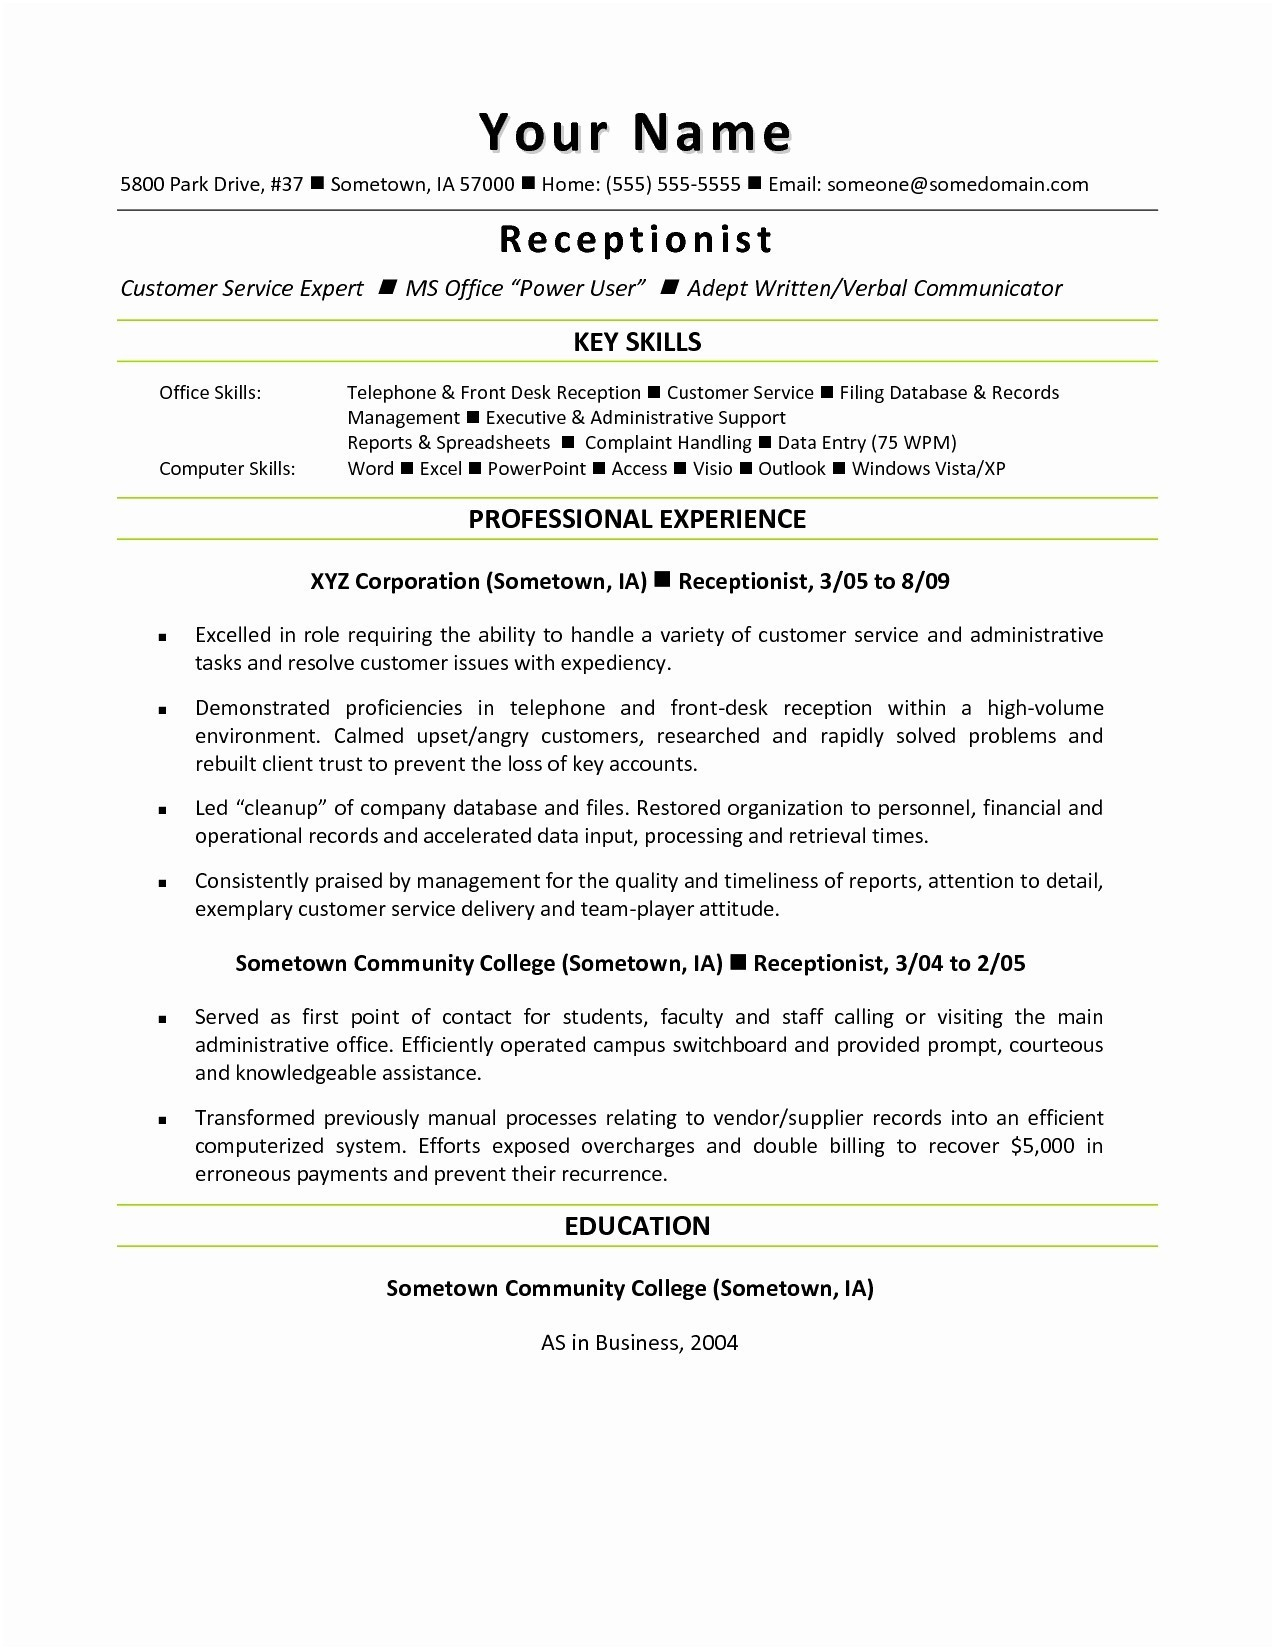 Cover Letter and Resume Template Word - Resume Microsoft Word Fresh Resume Mail format Sample Fresh